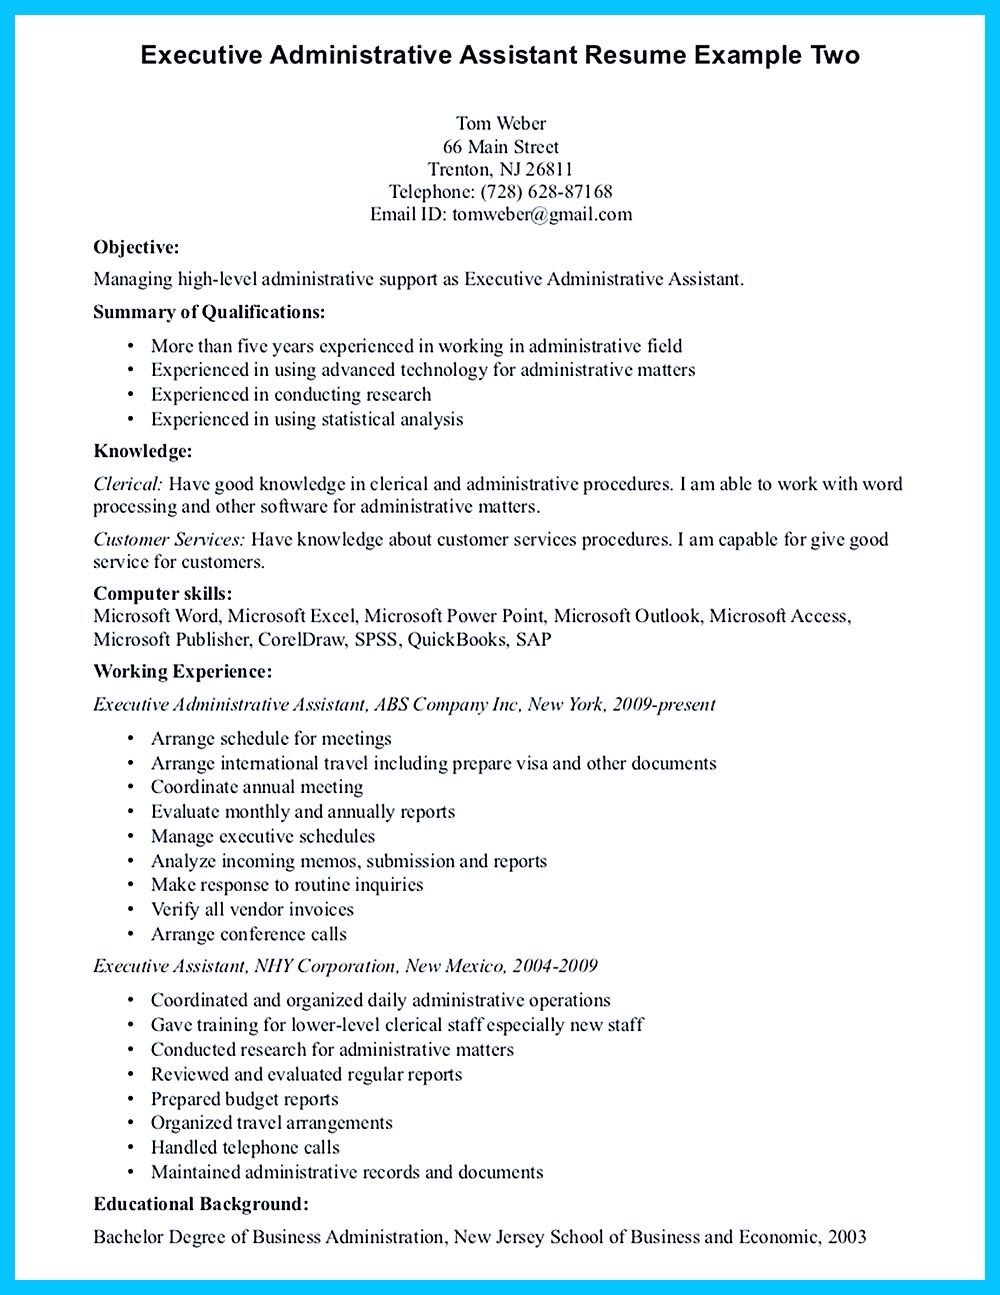 Resume Summary Examples In Writing Entry Level Administrative Assistant Resume You Need